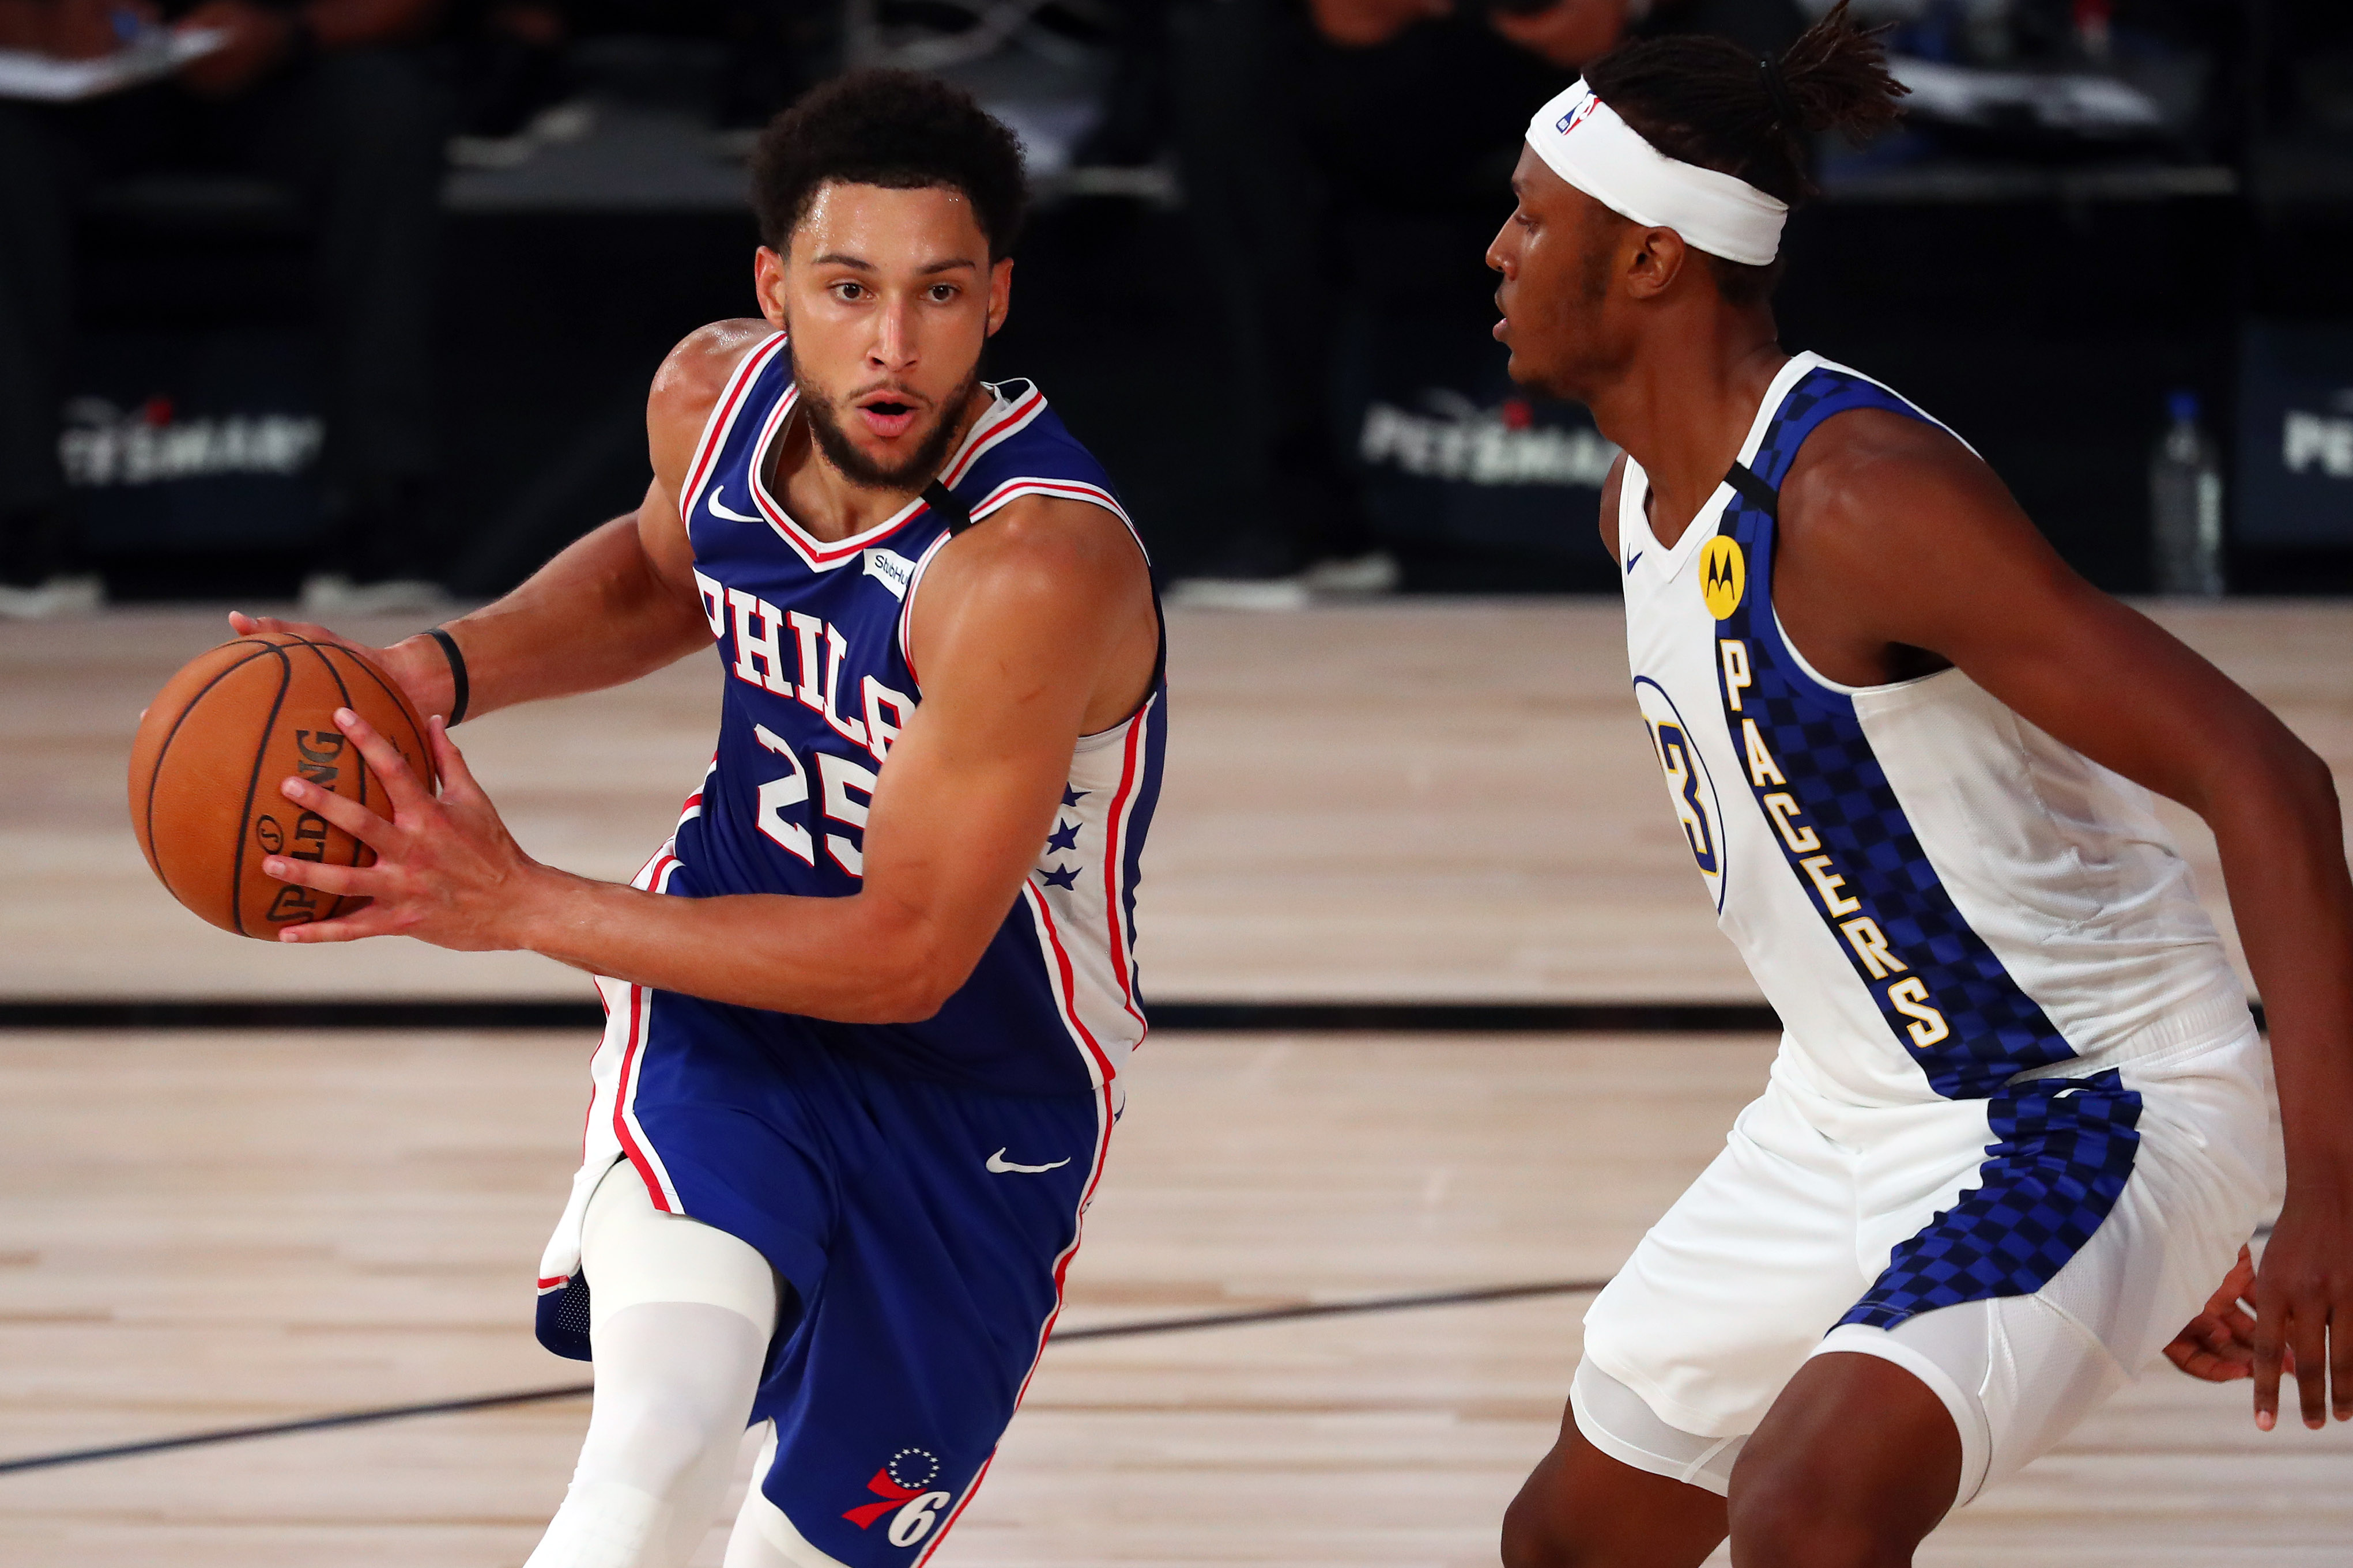 Ben Simmons driving into the lane during a 76ers game